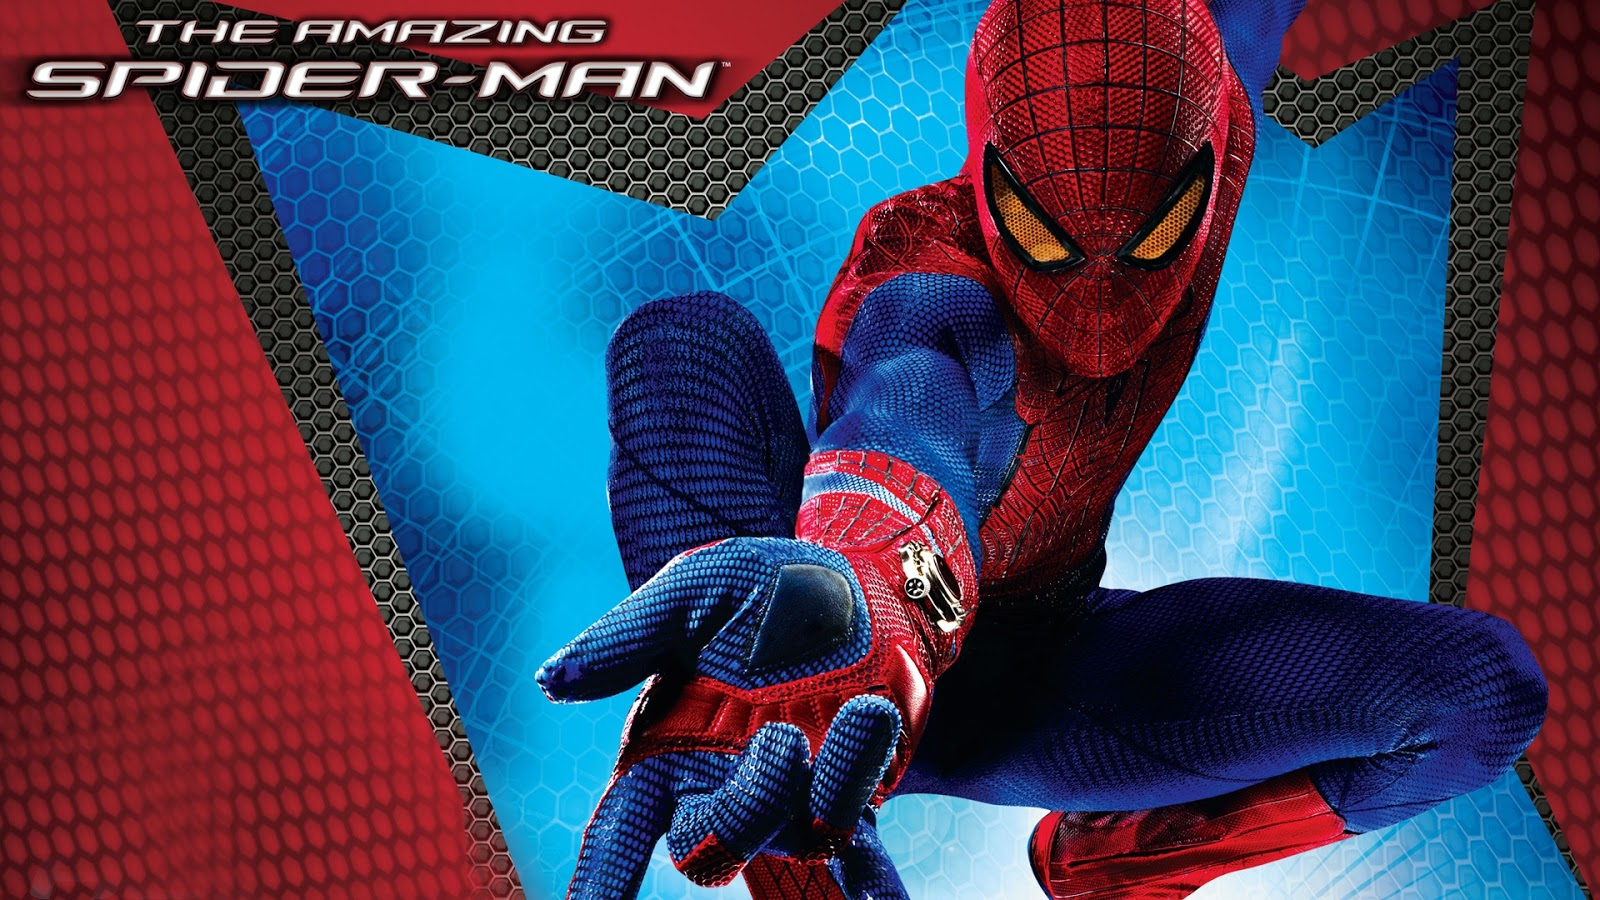 Wallpapers Hd For Mac The Amazing Spider Man Wallpapers Hd